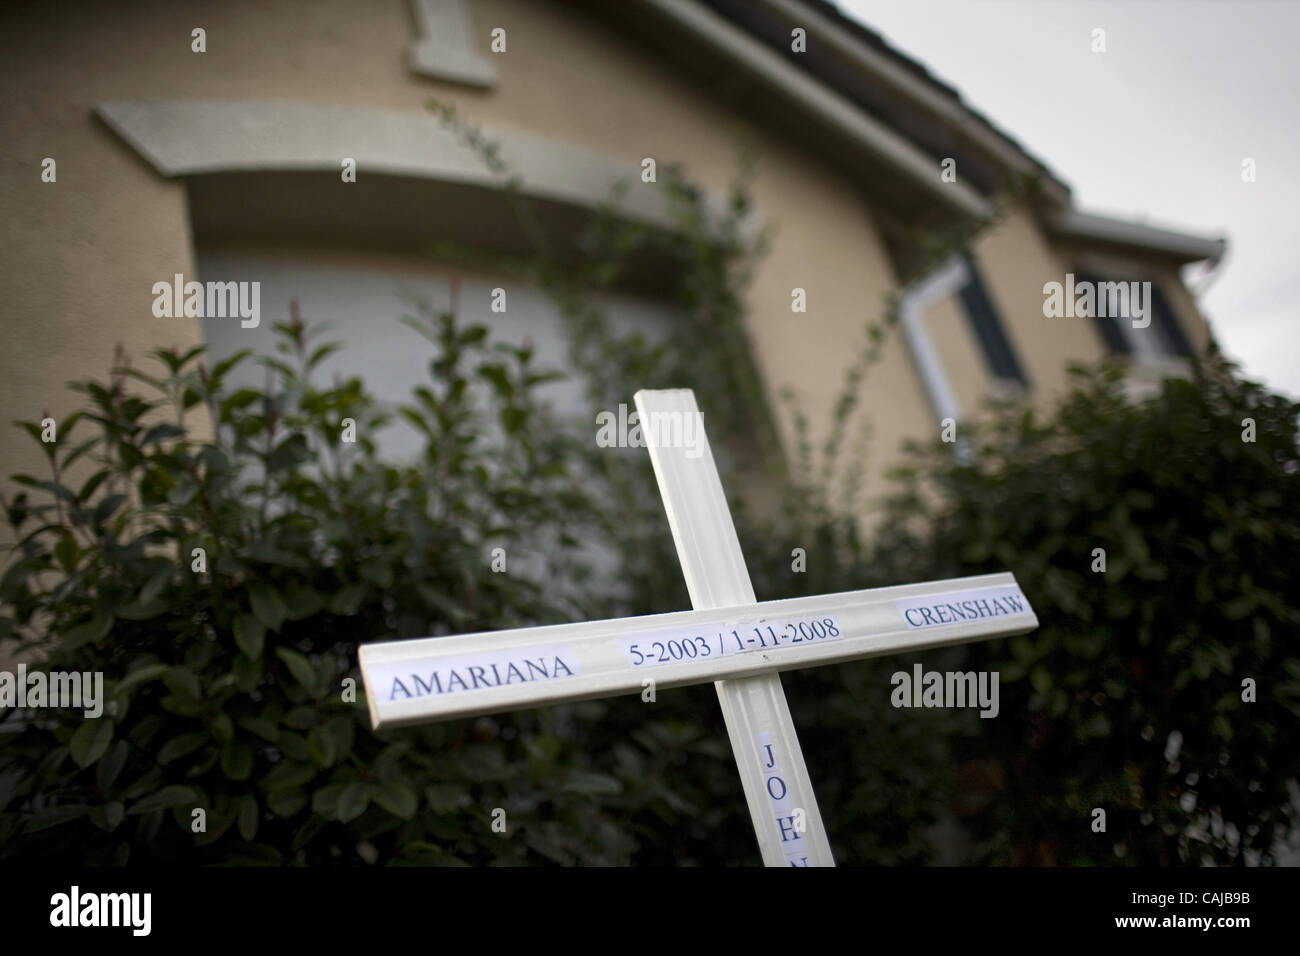 A cross sits outside the house that was involved in an arson fire which claimed the life of 4-year-old Amariana - Stock Image